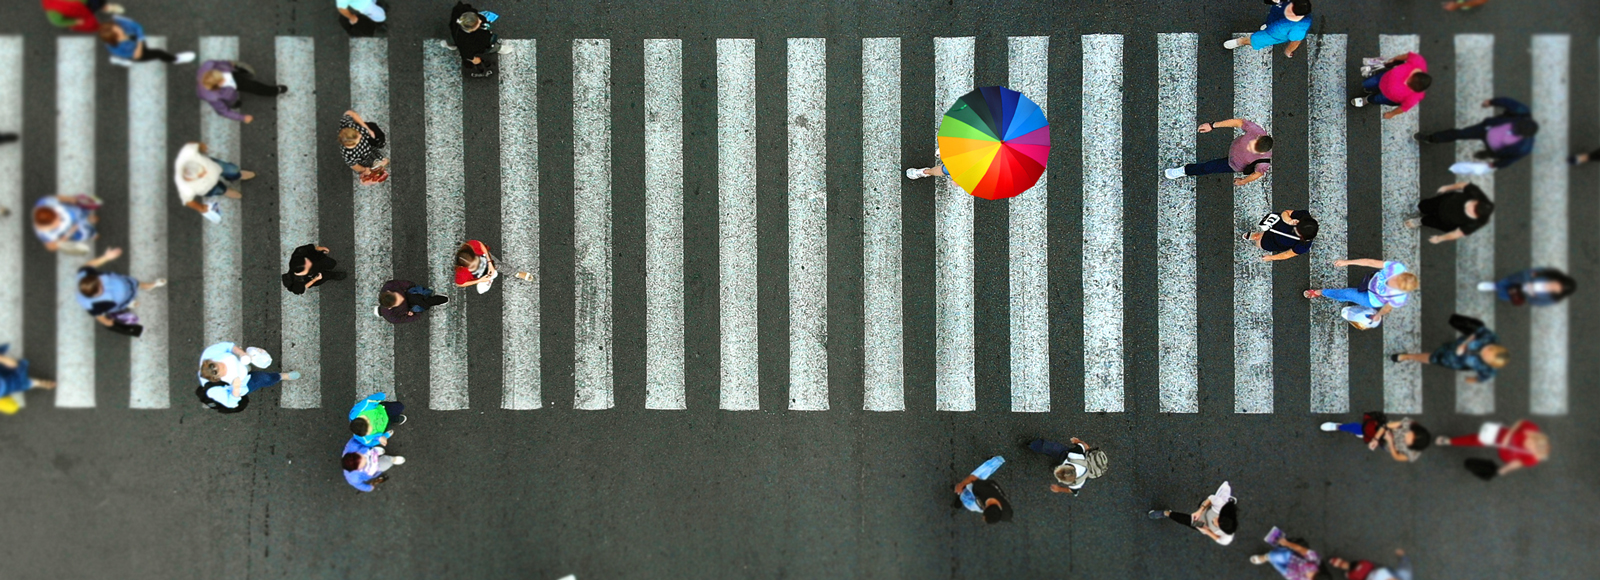 Aerial view of people on a zebra crossing and one person using a rainbow umbrella